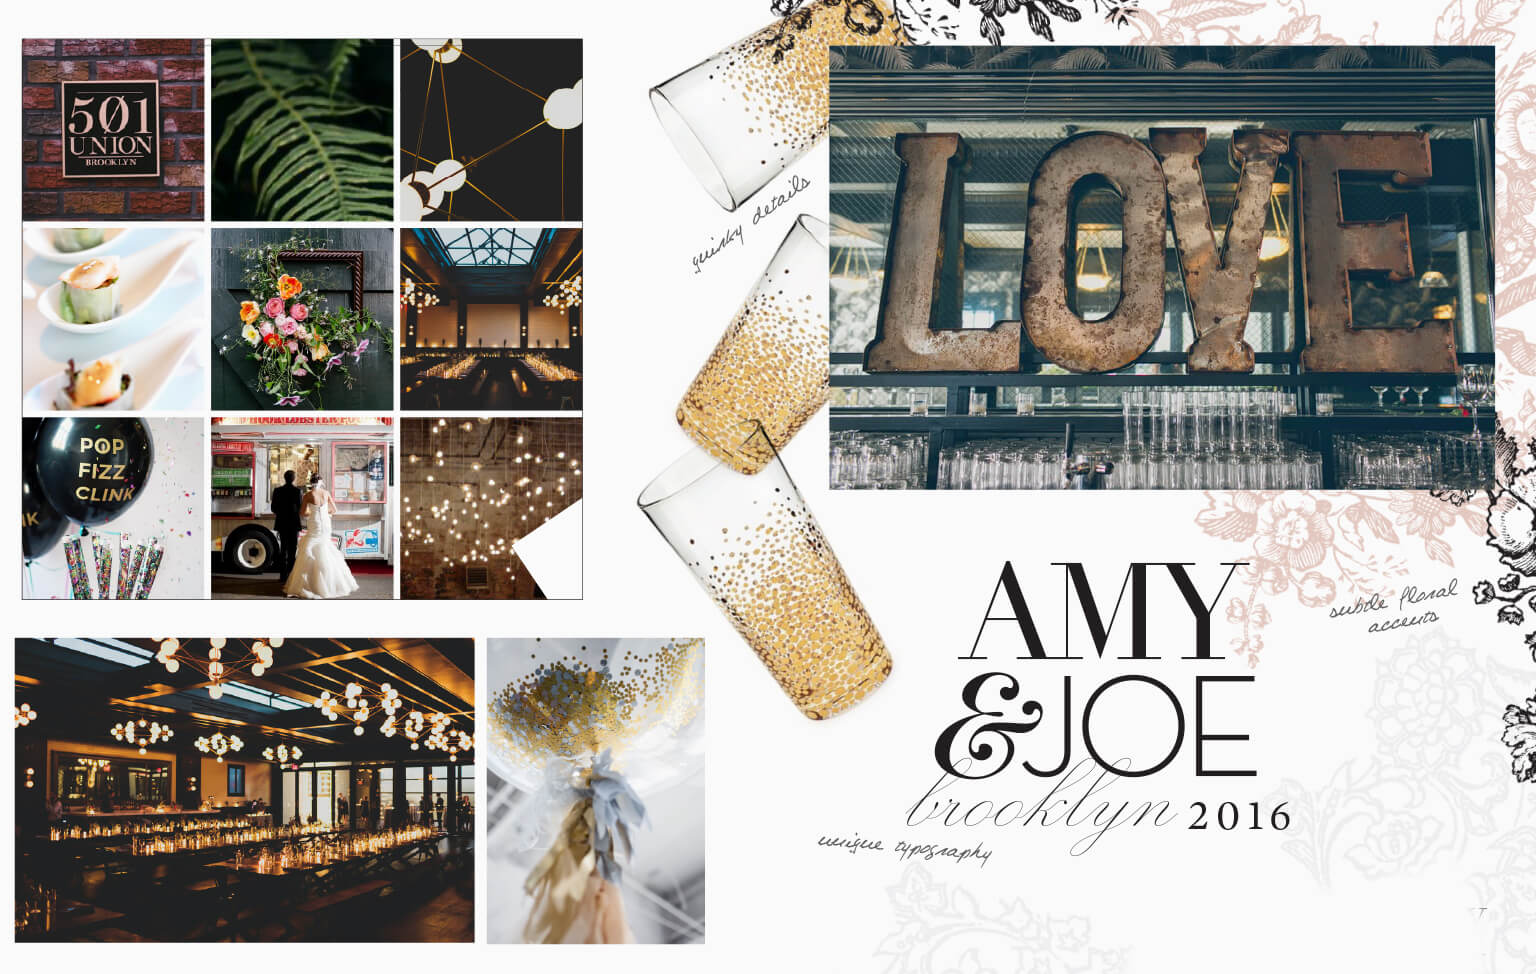 501 Union inspired wedding imagery